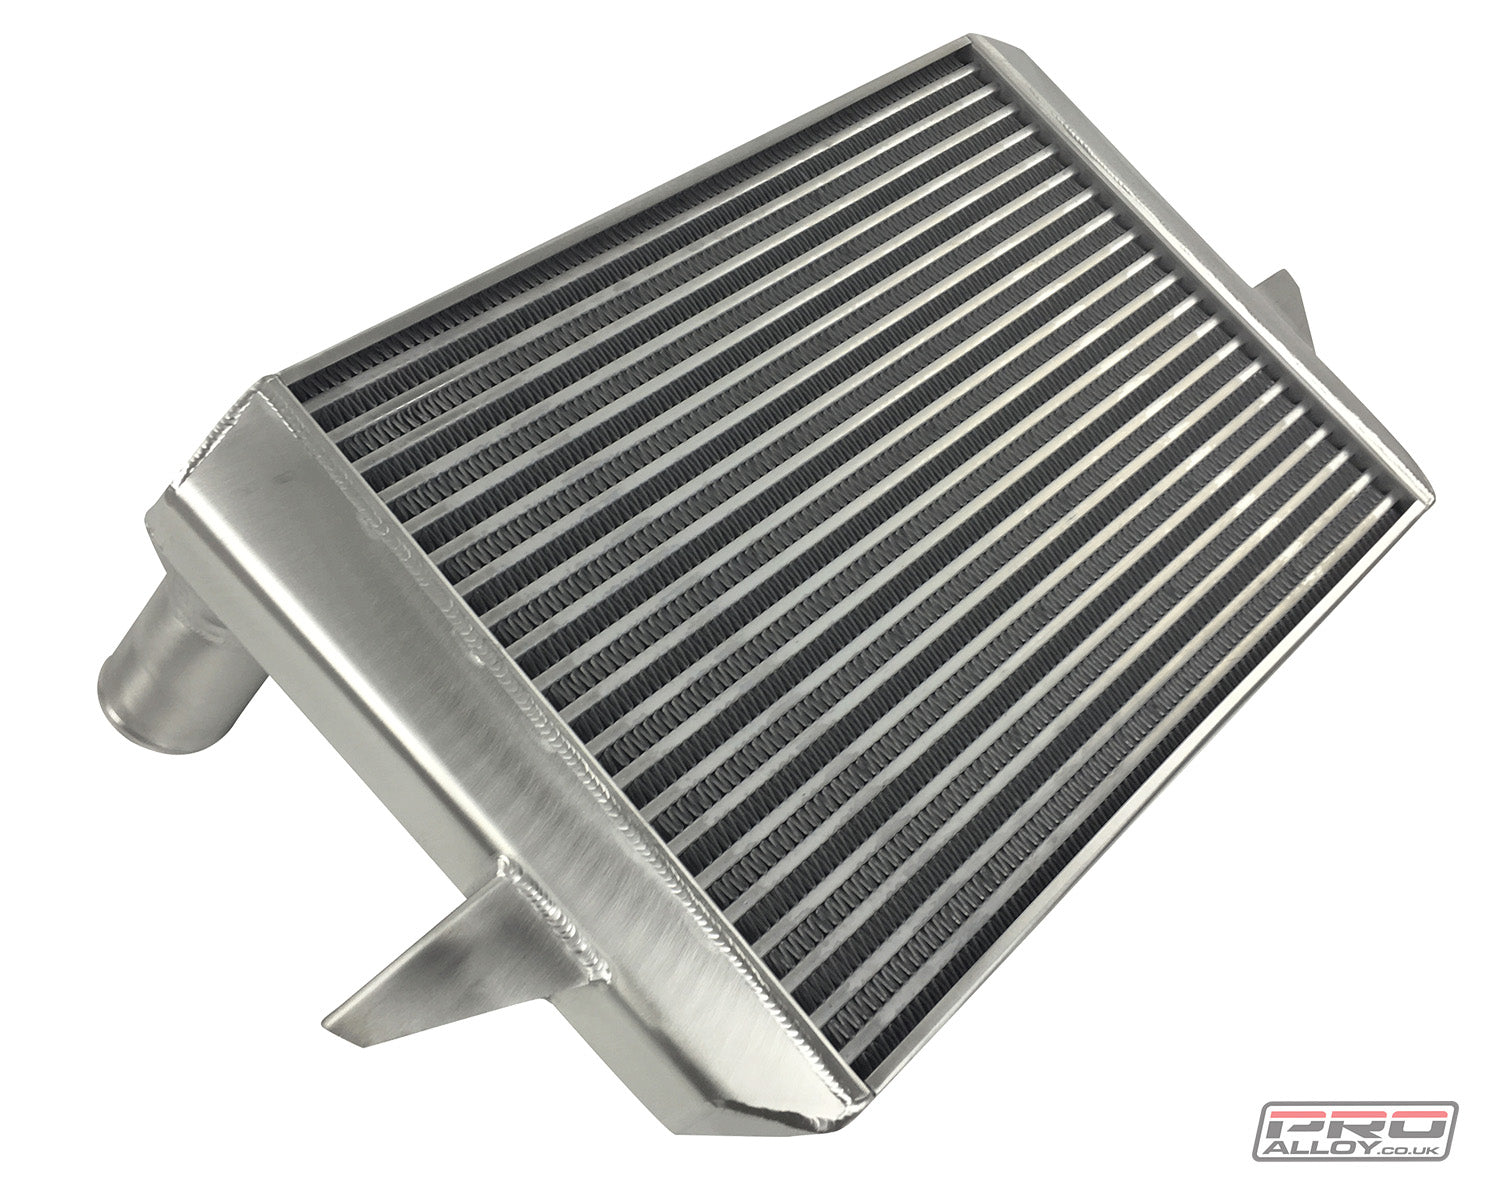 "Escort Cosworth Intercooler - 50mm + 3"" Pipes"